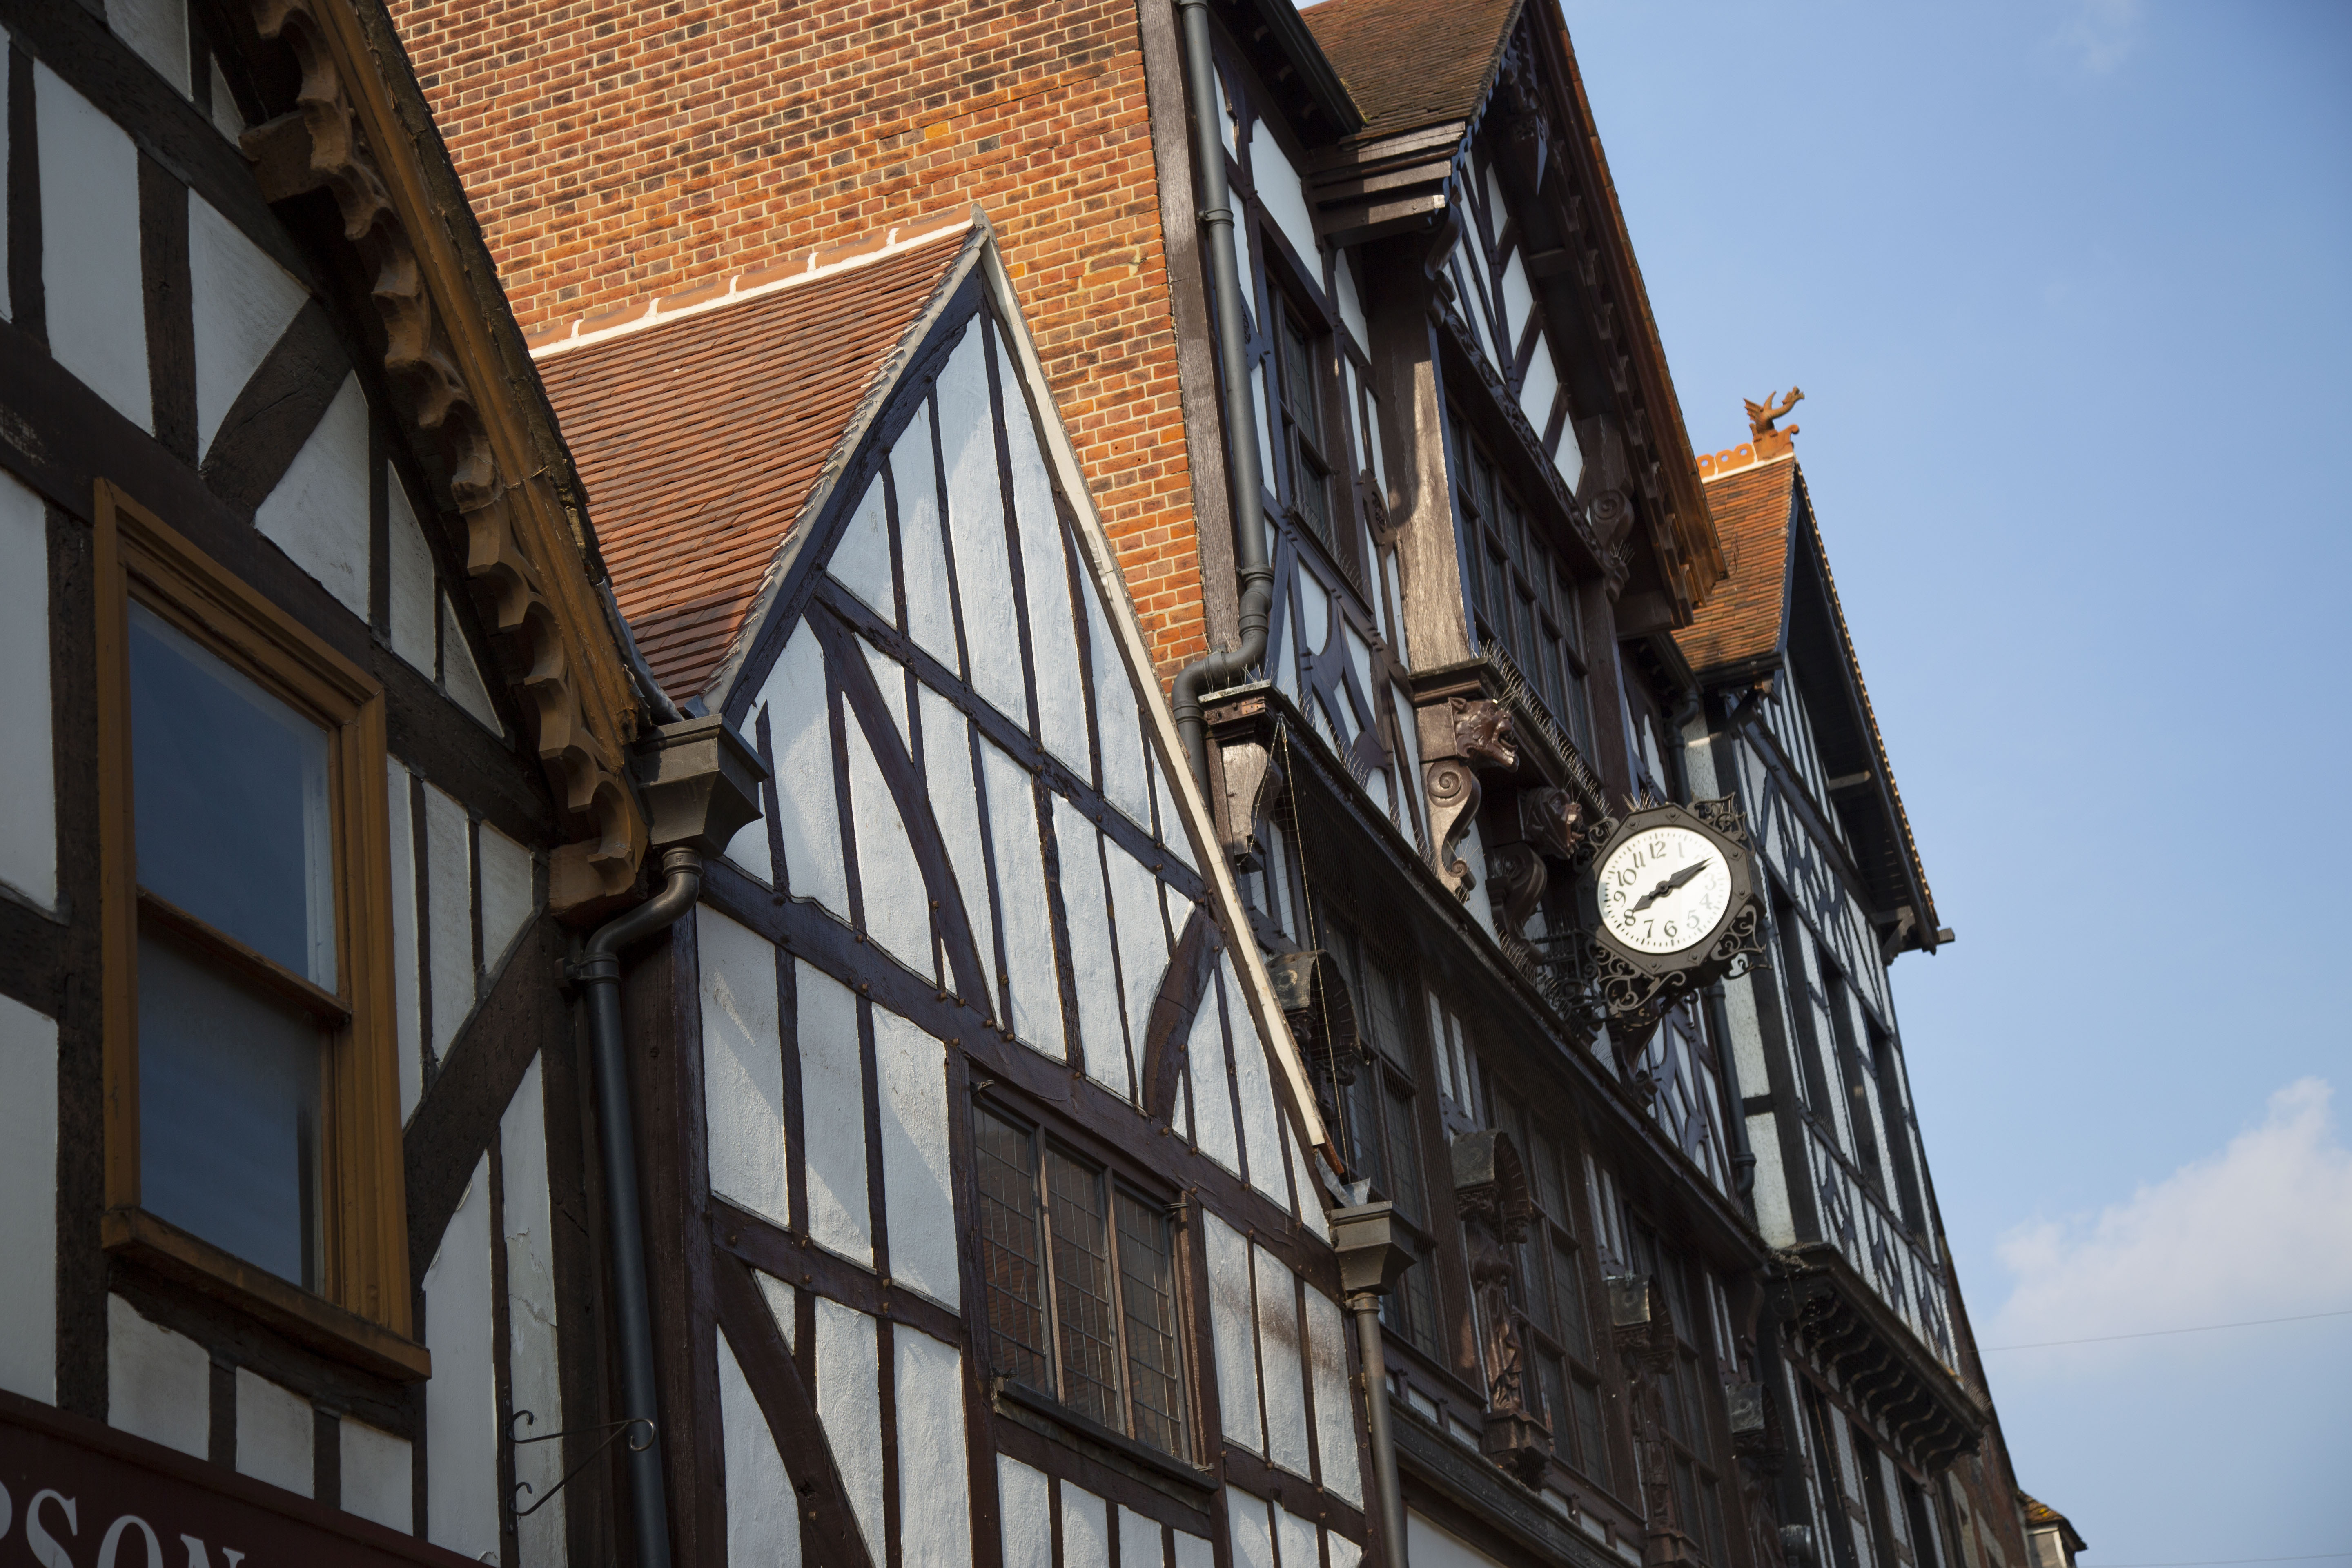 The top stories of some of Winchester's shops, decorated in a white and black Tudor visage